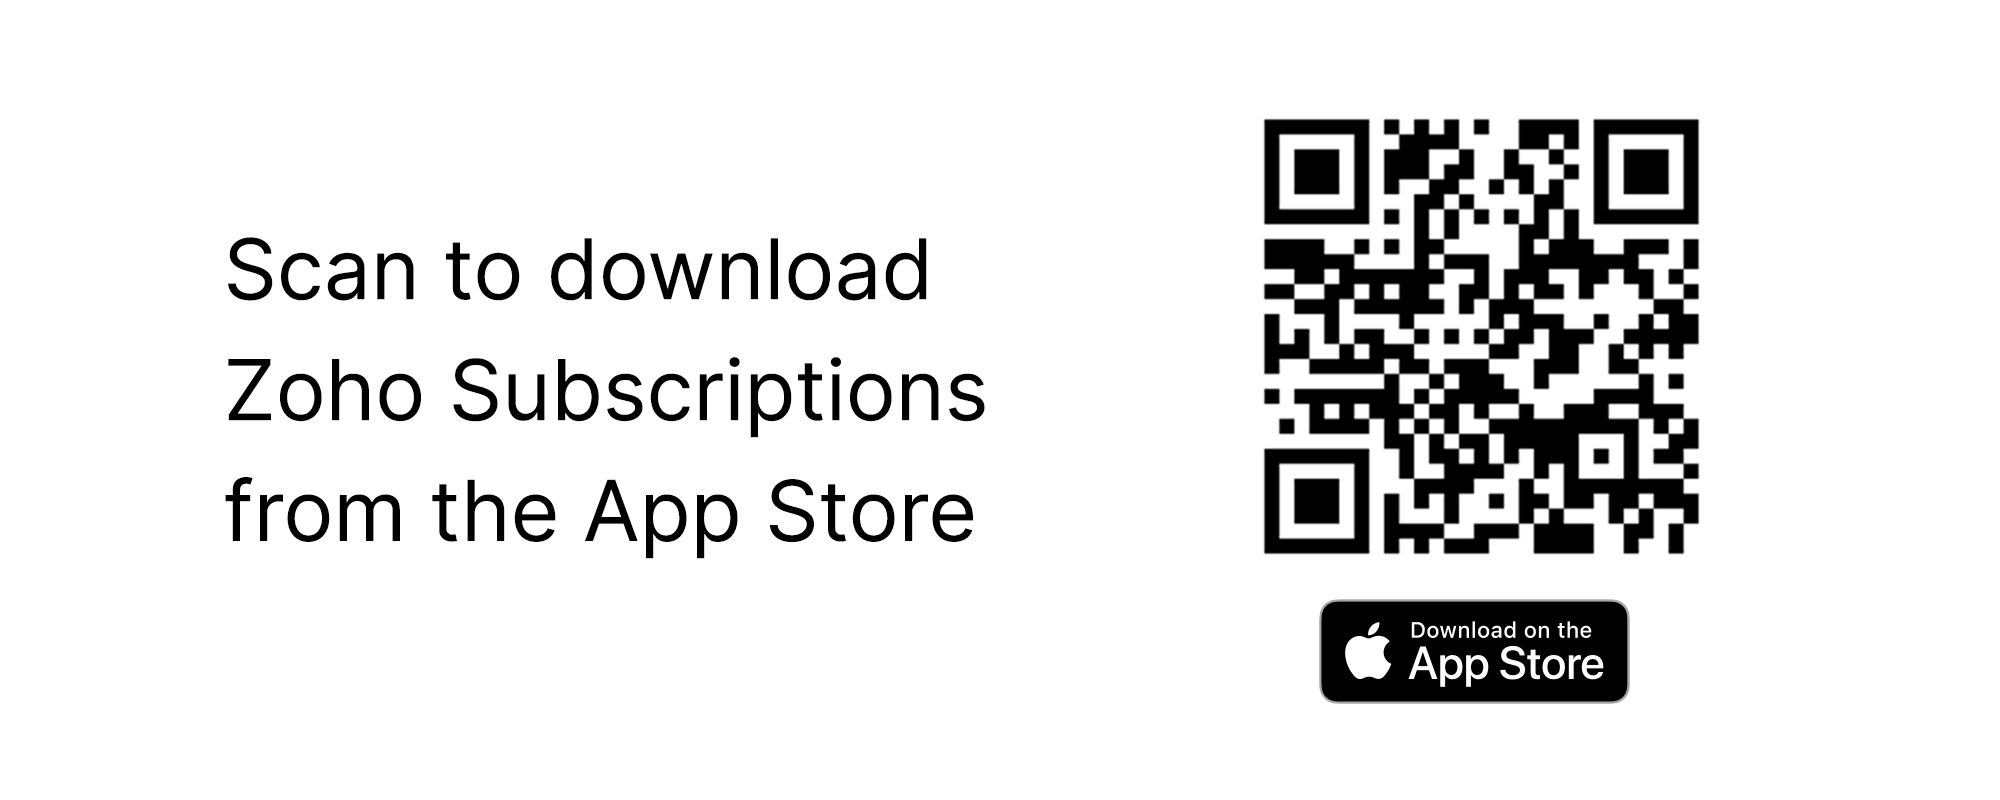 Scan to Download Zoho Subscriptions QR